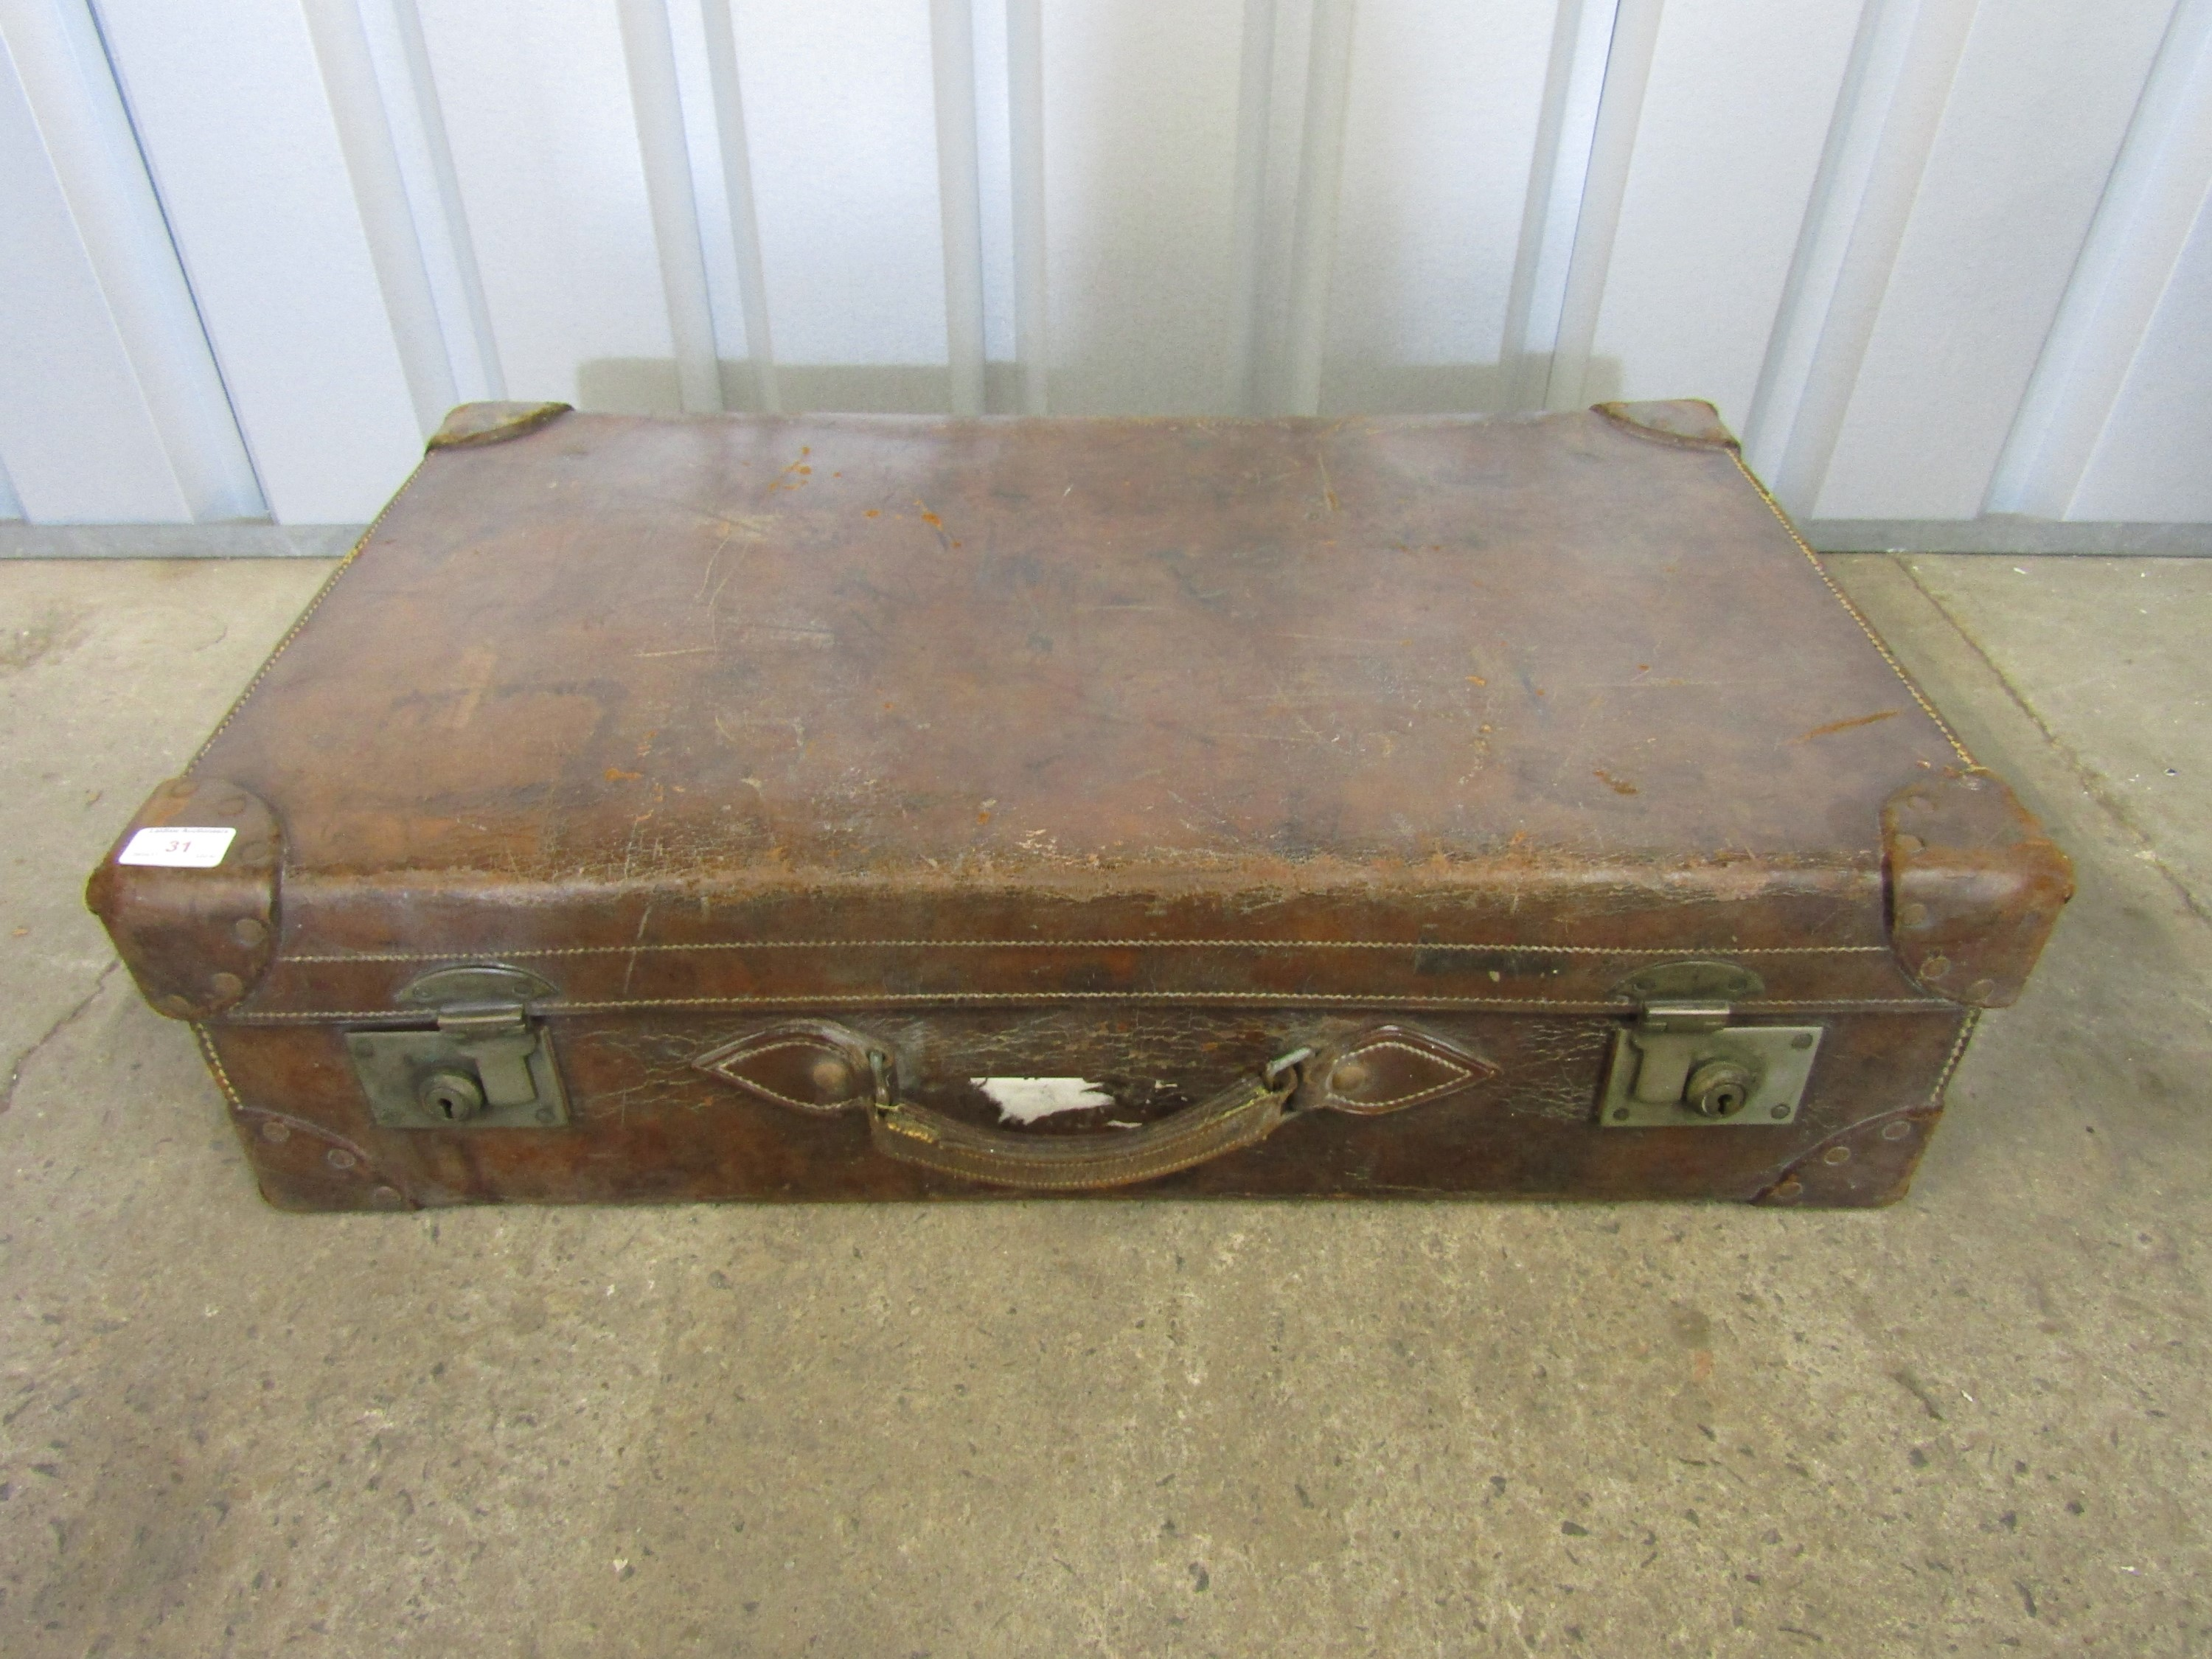 Lot 31 - A large vintage leather luggage case